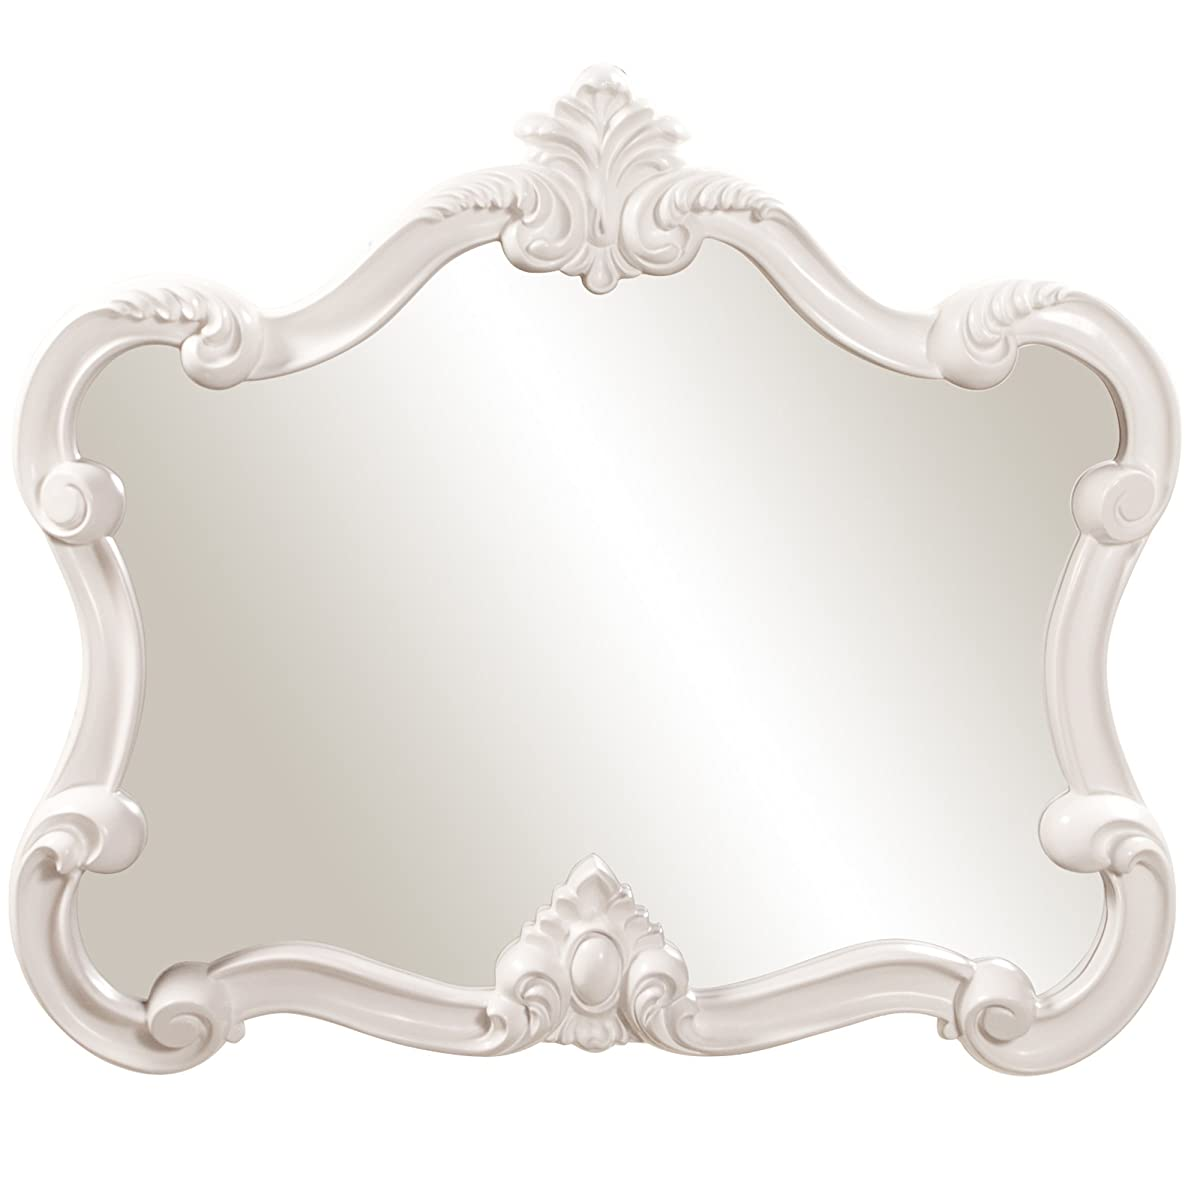 Howard Elliott Veruca Rectangular Mirror, Ornate Wall Piece, Glossy White Lacquer, 28 x 32-Inch